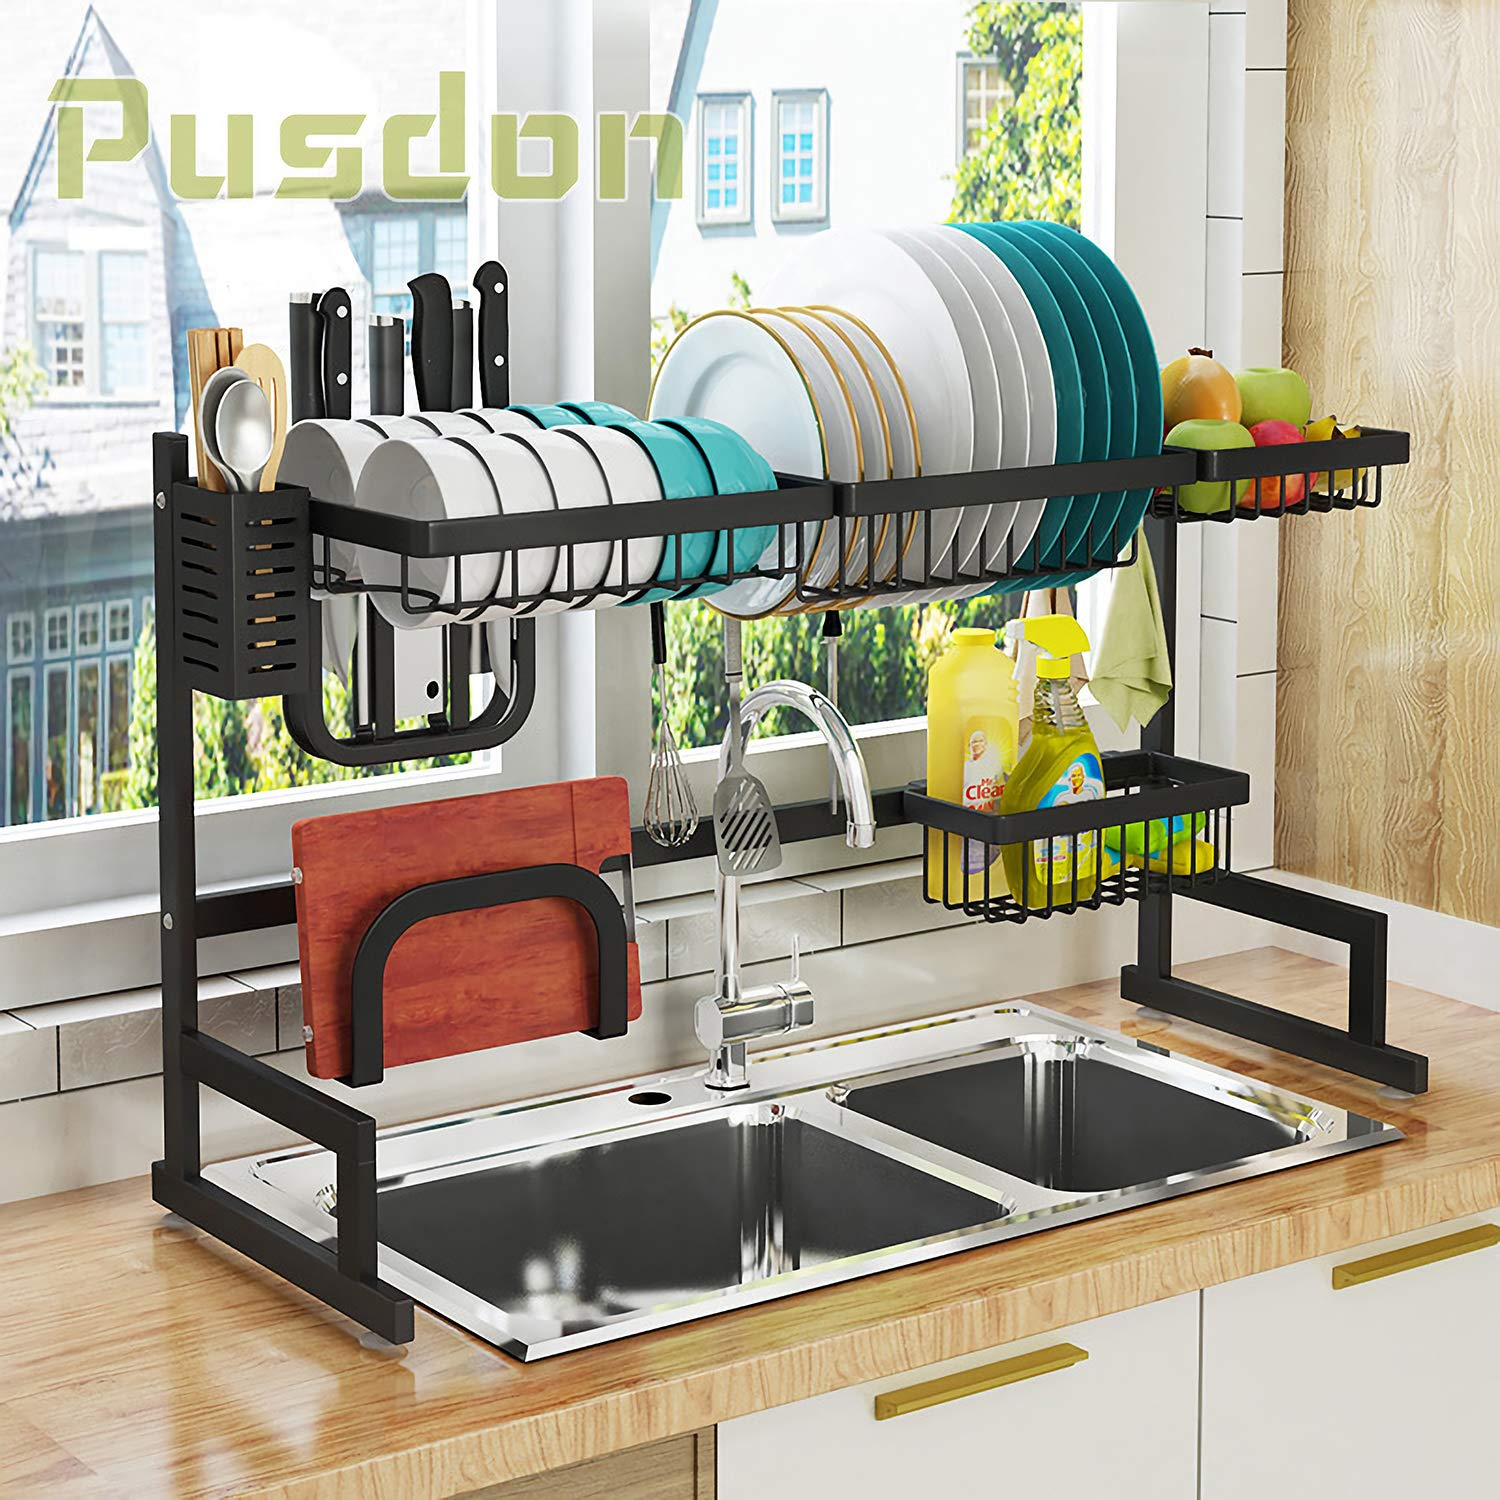 "Over Sink(32"") Dish Drying Rack, Drainer Shelf for Kitchen Supplies Storage Counter Organizer Utensils Holder Stainless Steel Display- Kitchen Space Save Must Have (Sink size ≤ 32 1/2 inch, black)"